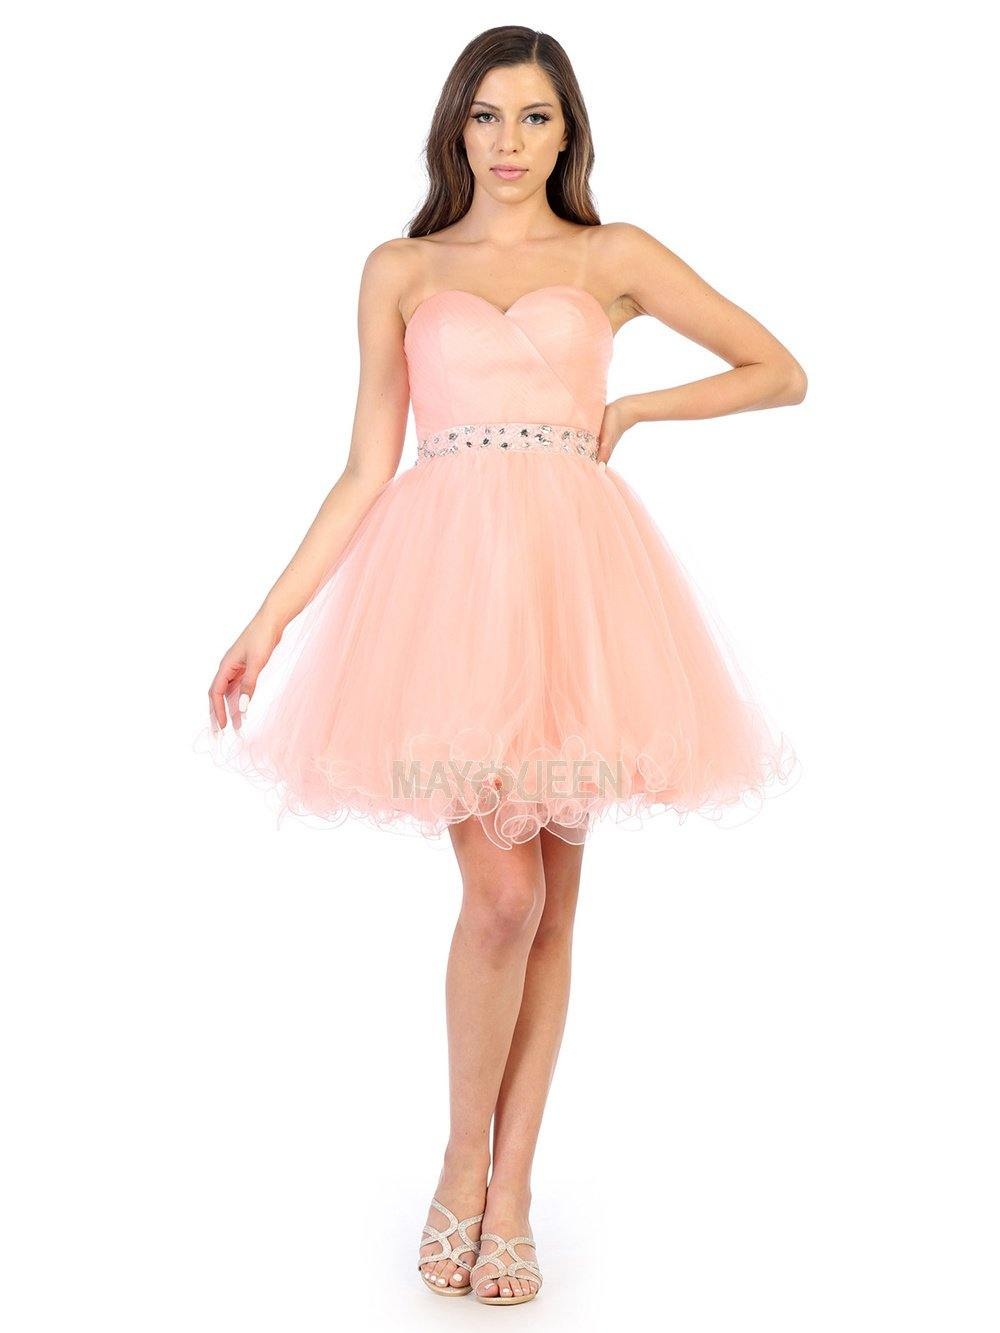 Strapless Short Dress Homecoming - The Dress Outlet Blush